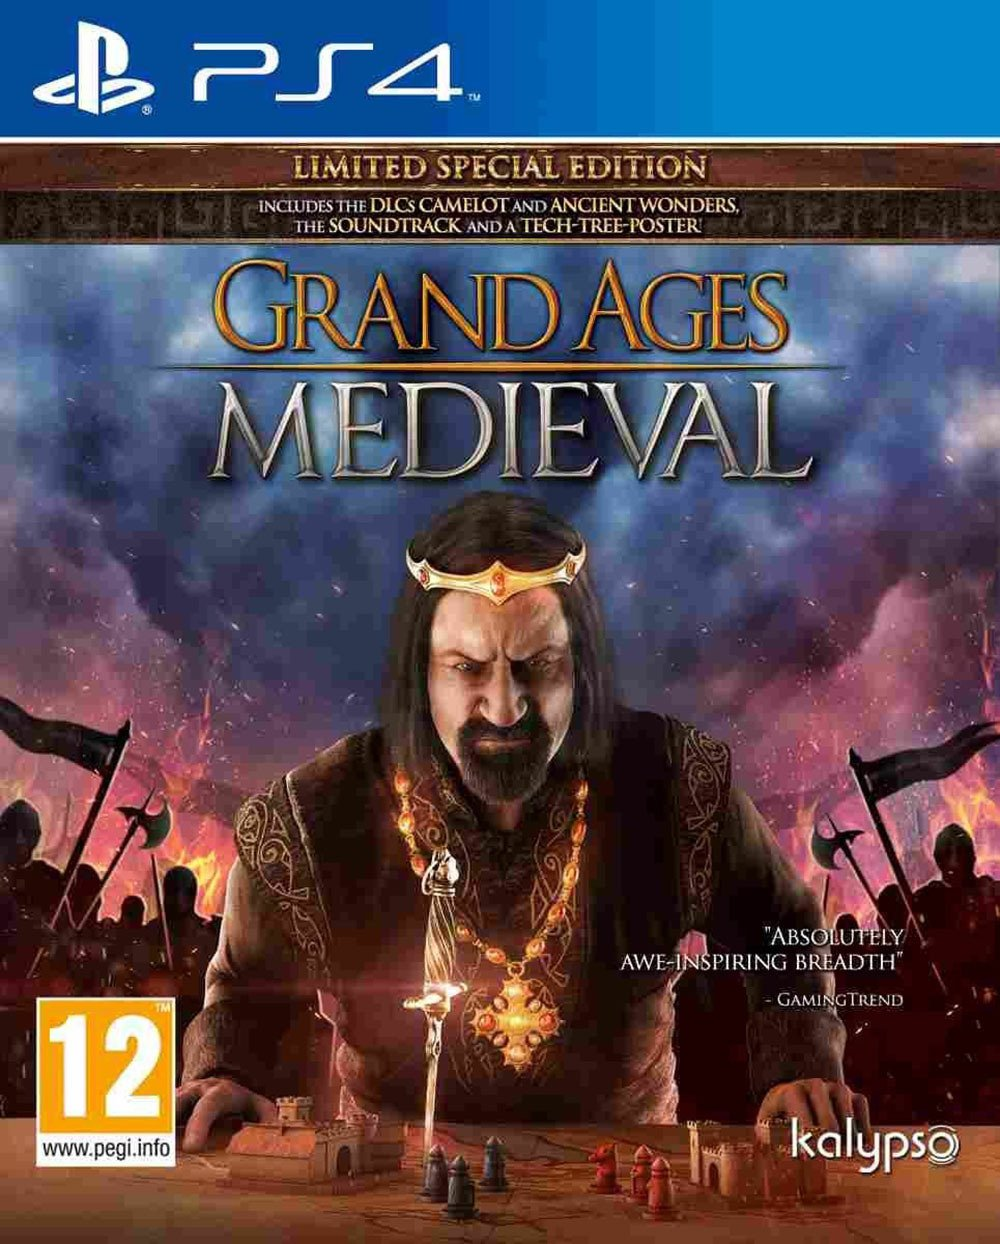 Grand Ages: Medieval (Playstation 4) Best Price and Cheapest